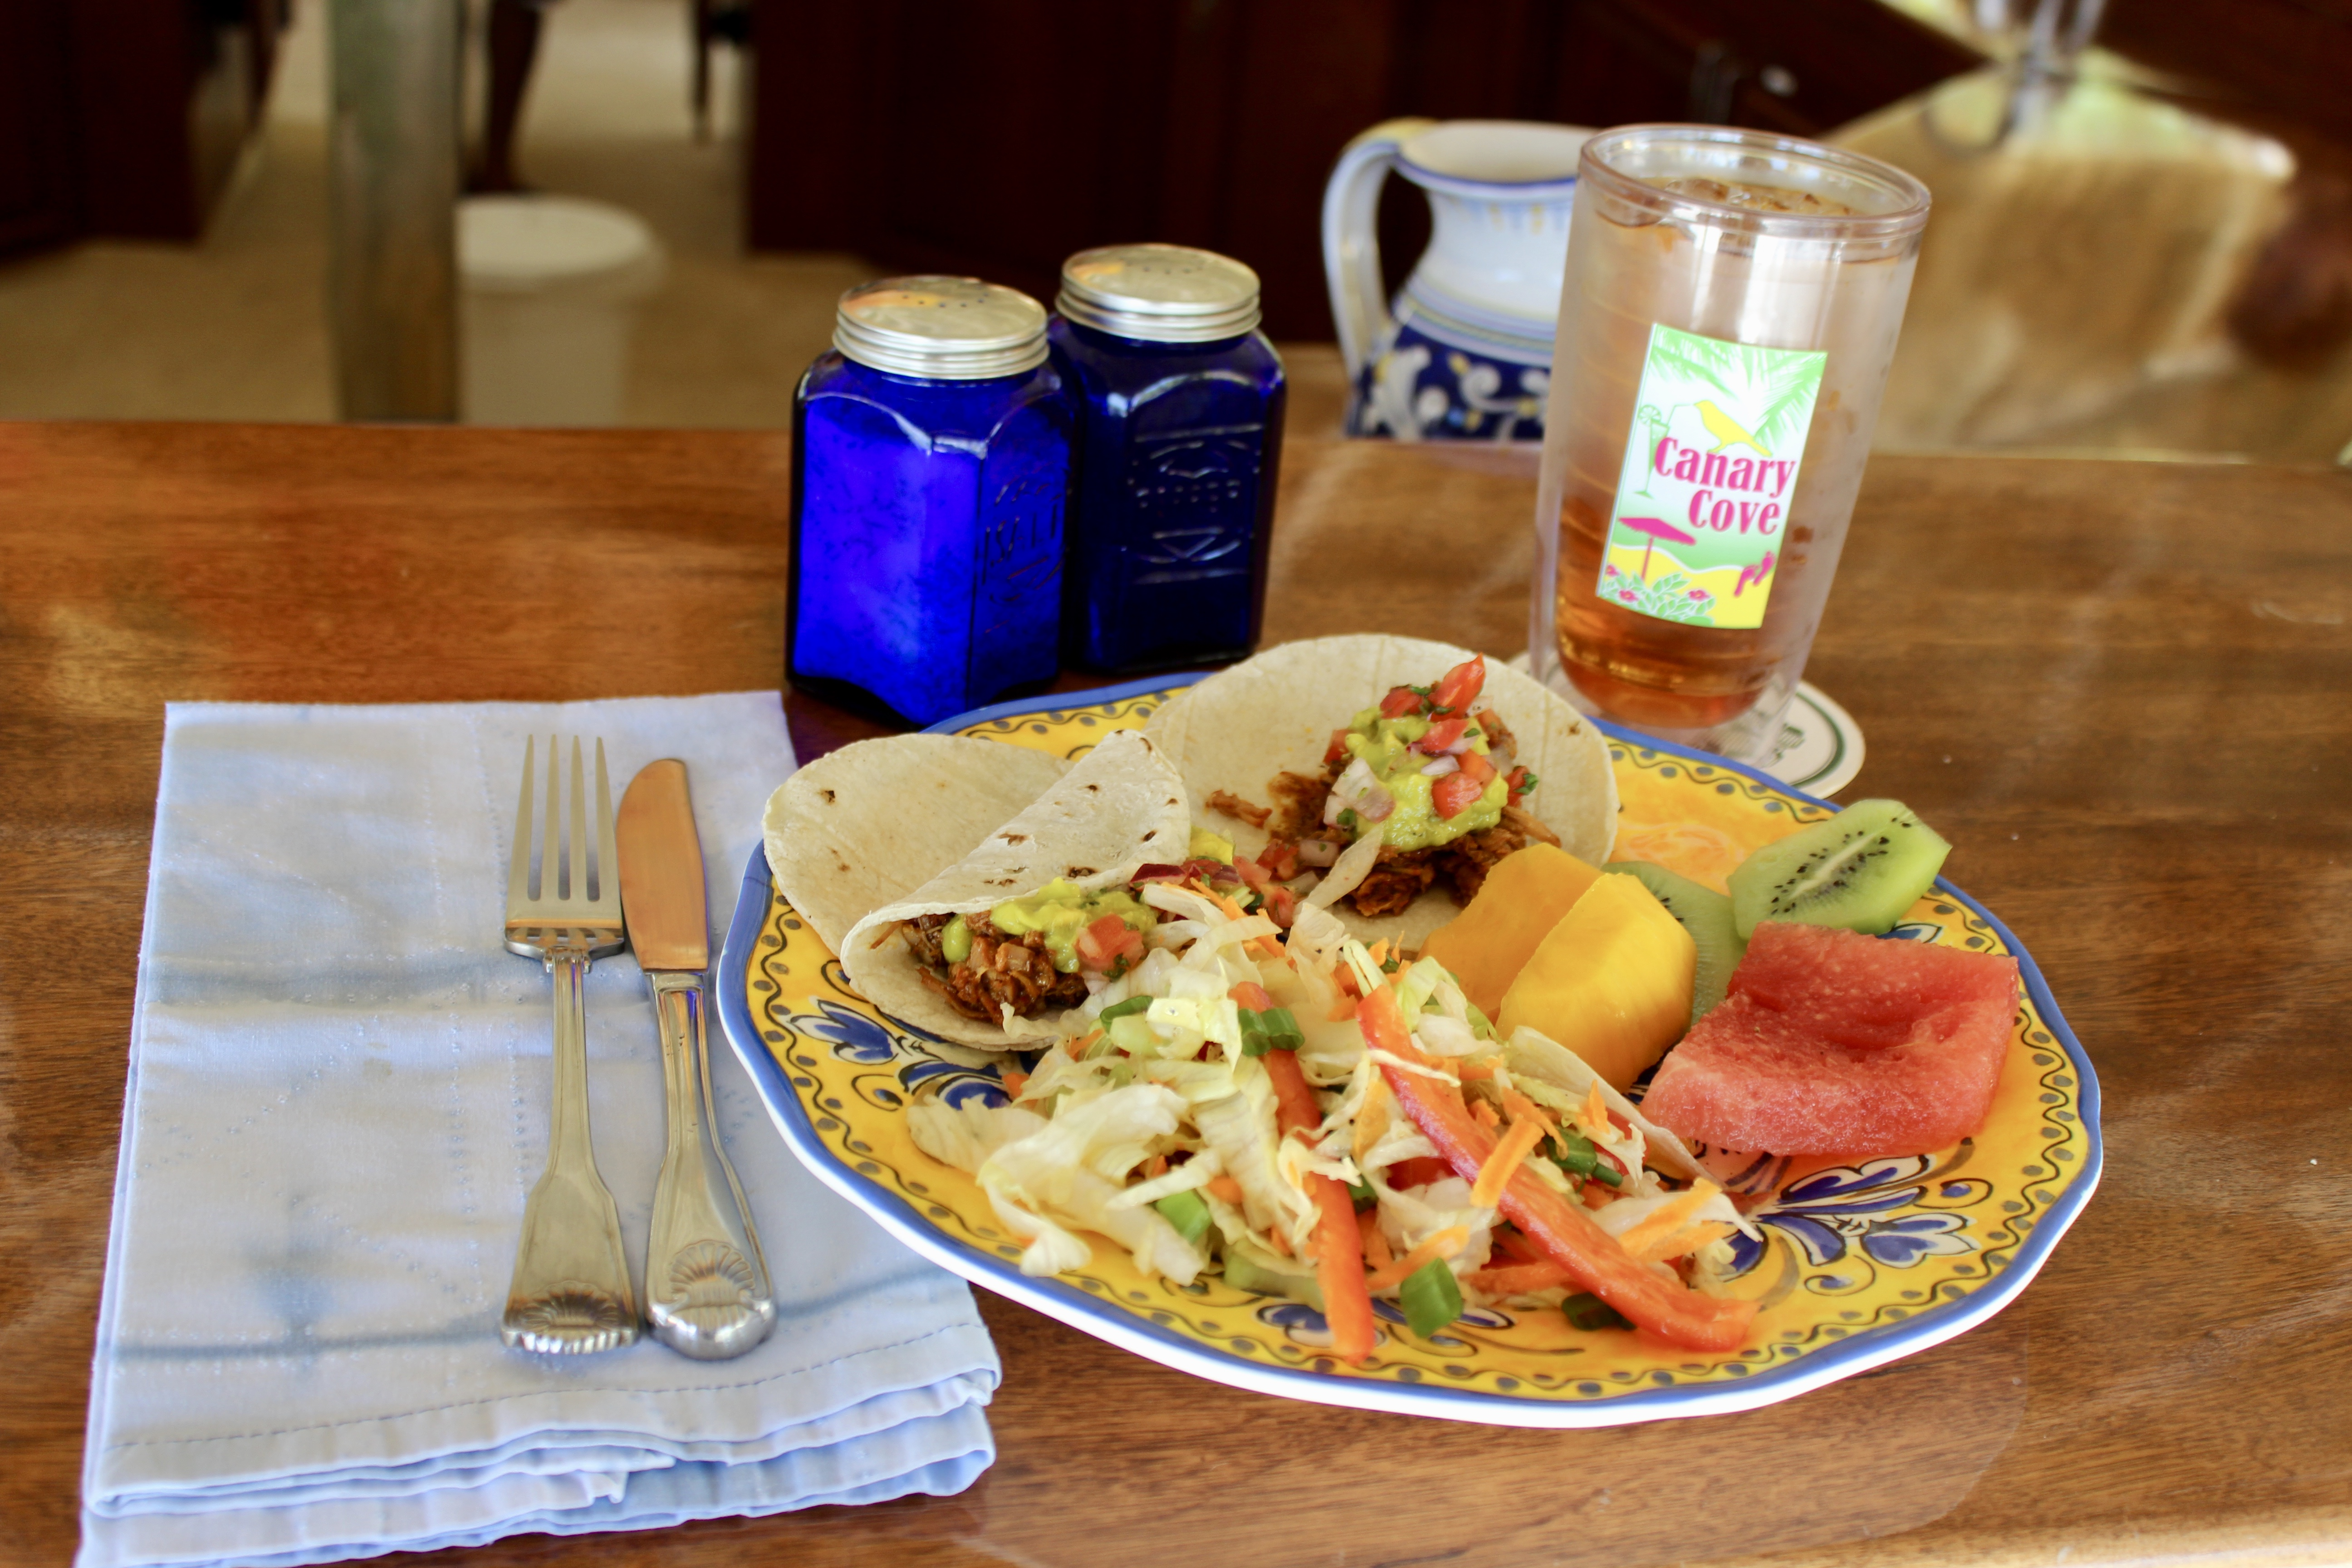 Canary Cove Private Chef-Prepared Lunch: Pulled Pork Tacos, Fresh Salad & Fruit